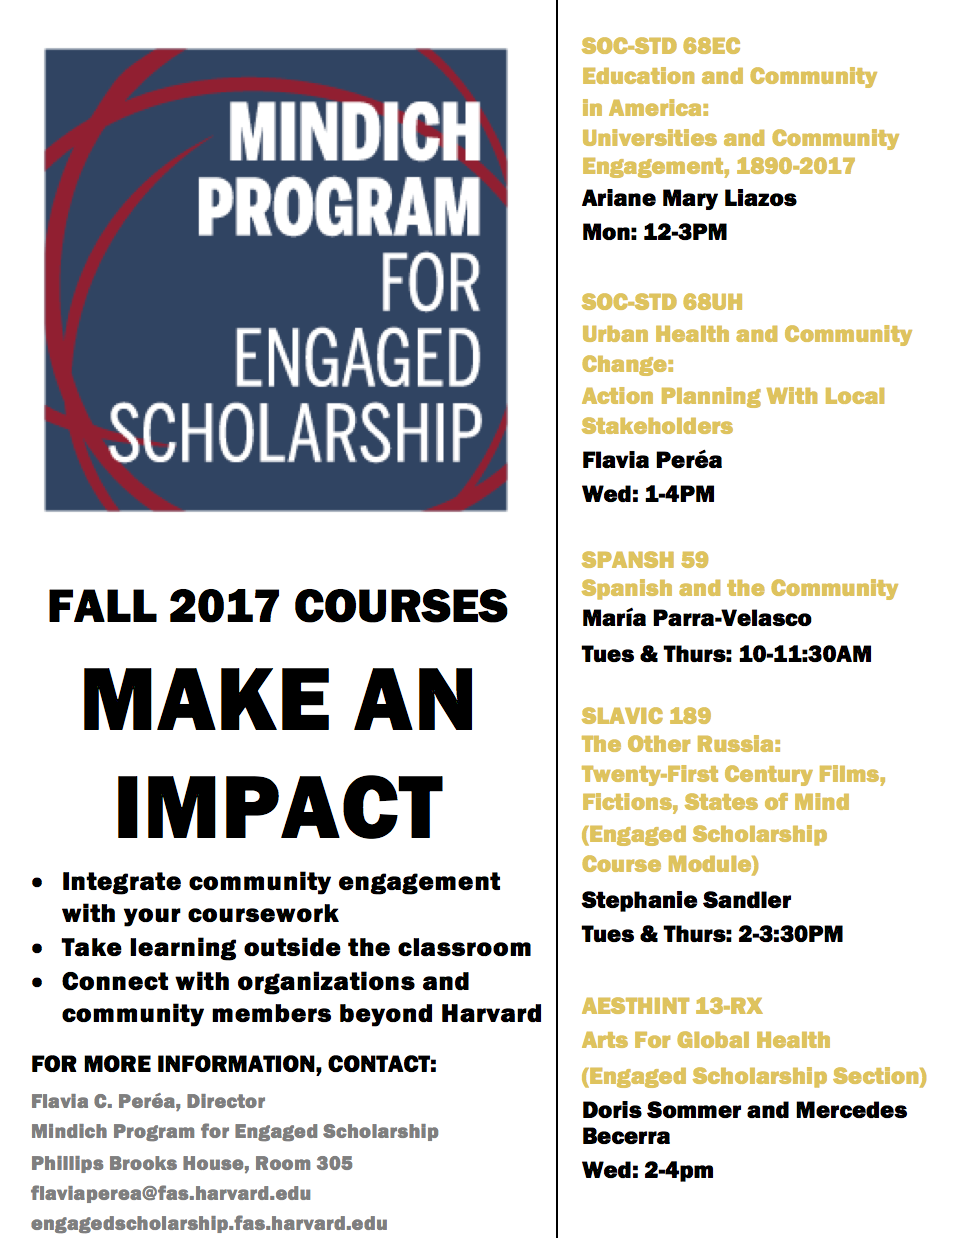 2017 Fall Mindich Engaged Scholarship Courses